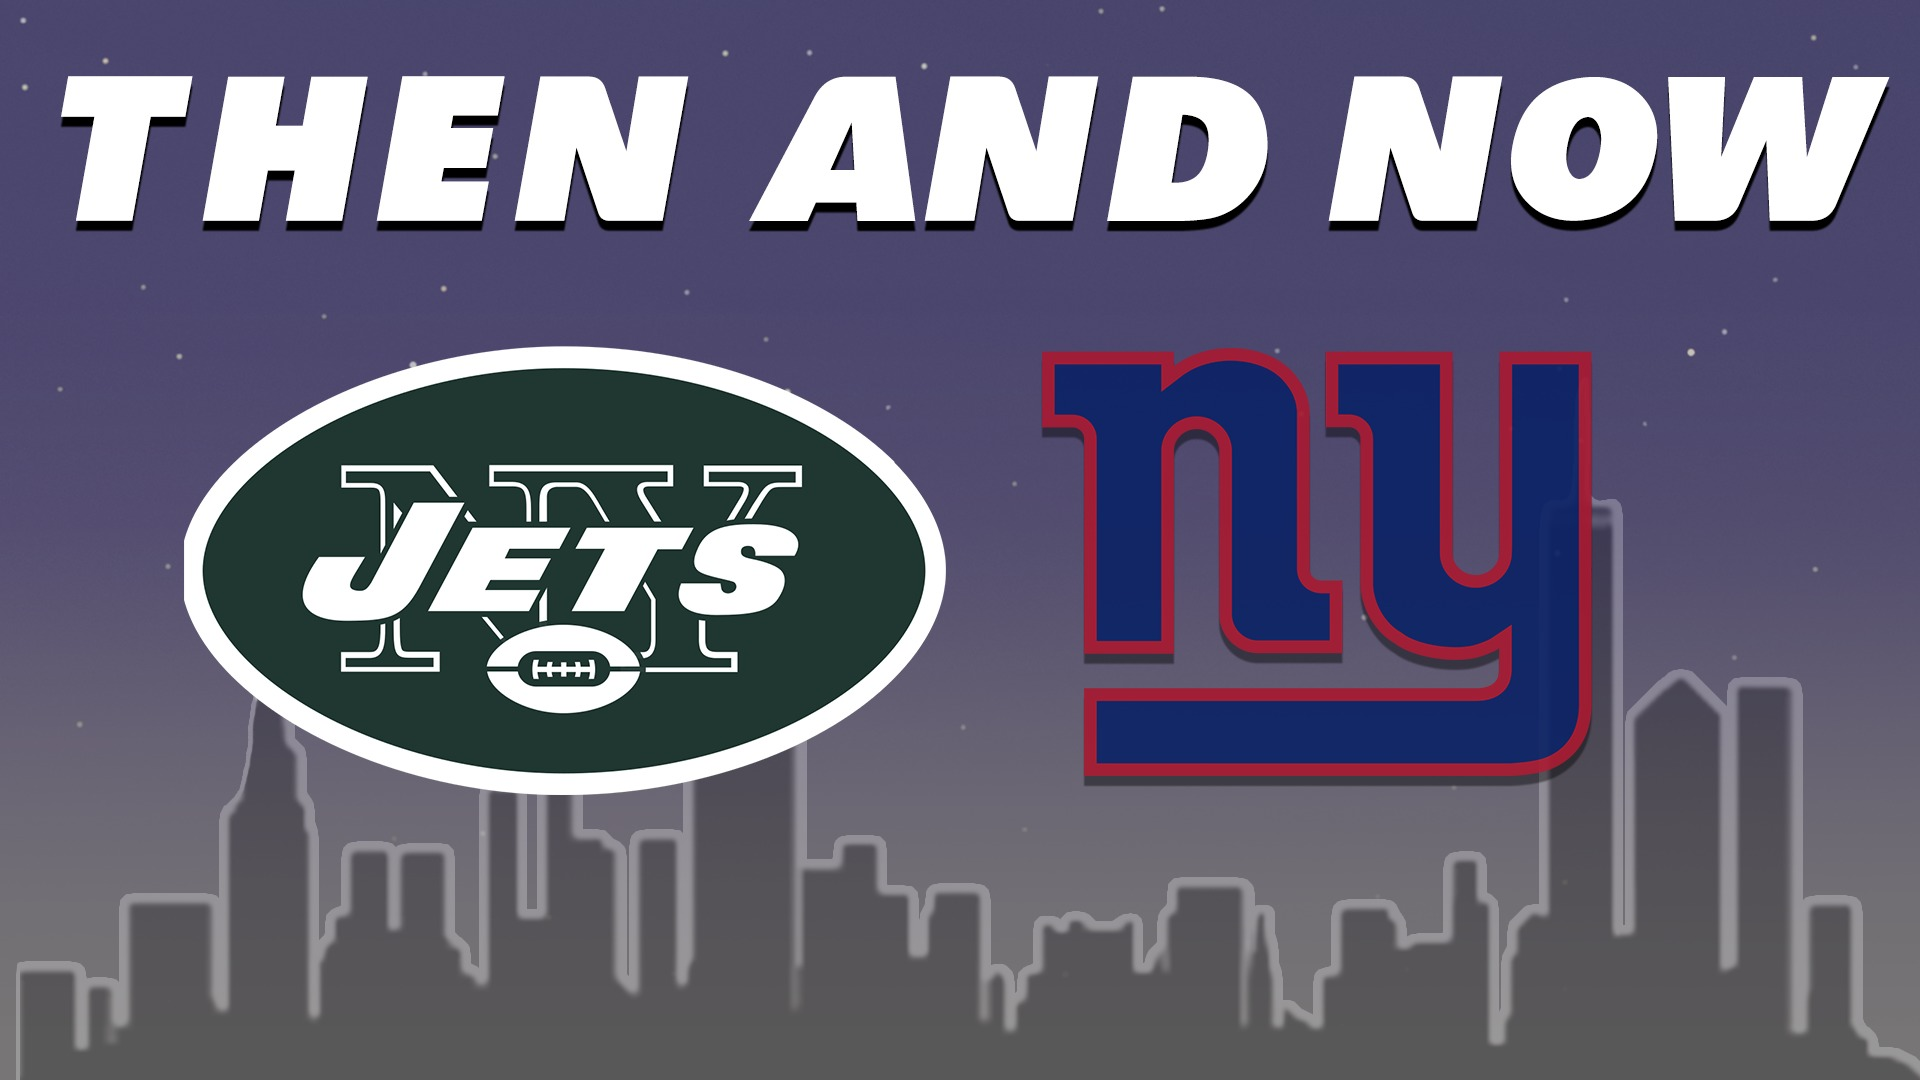 What Jets And Giants Fans Say Then And Now